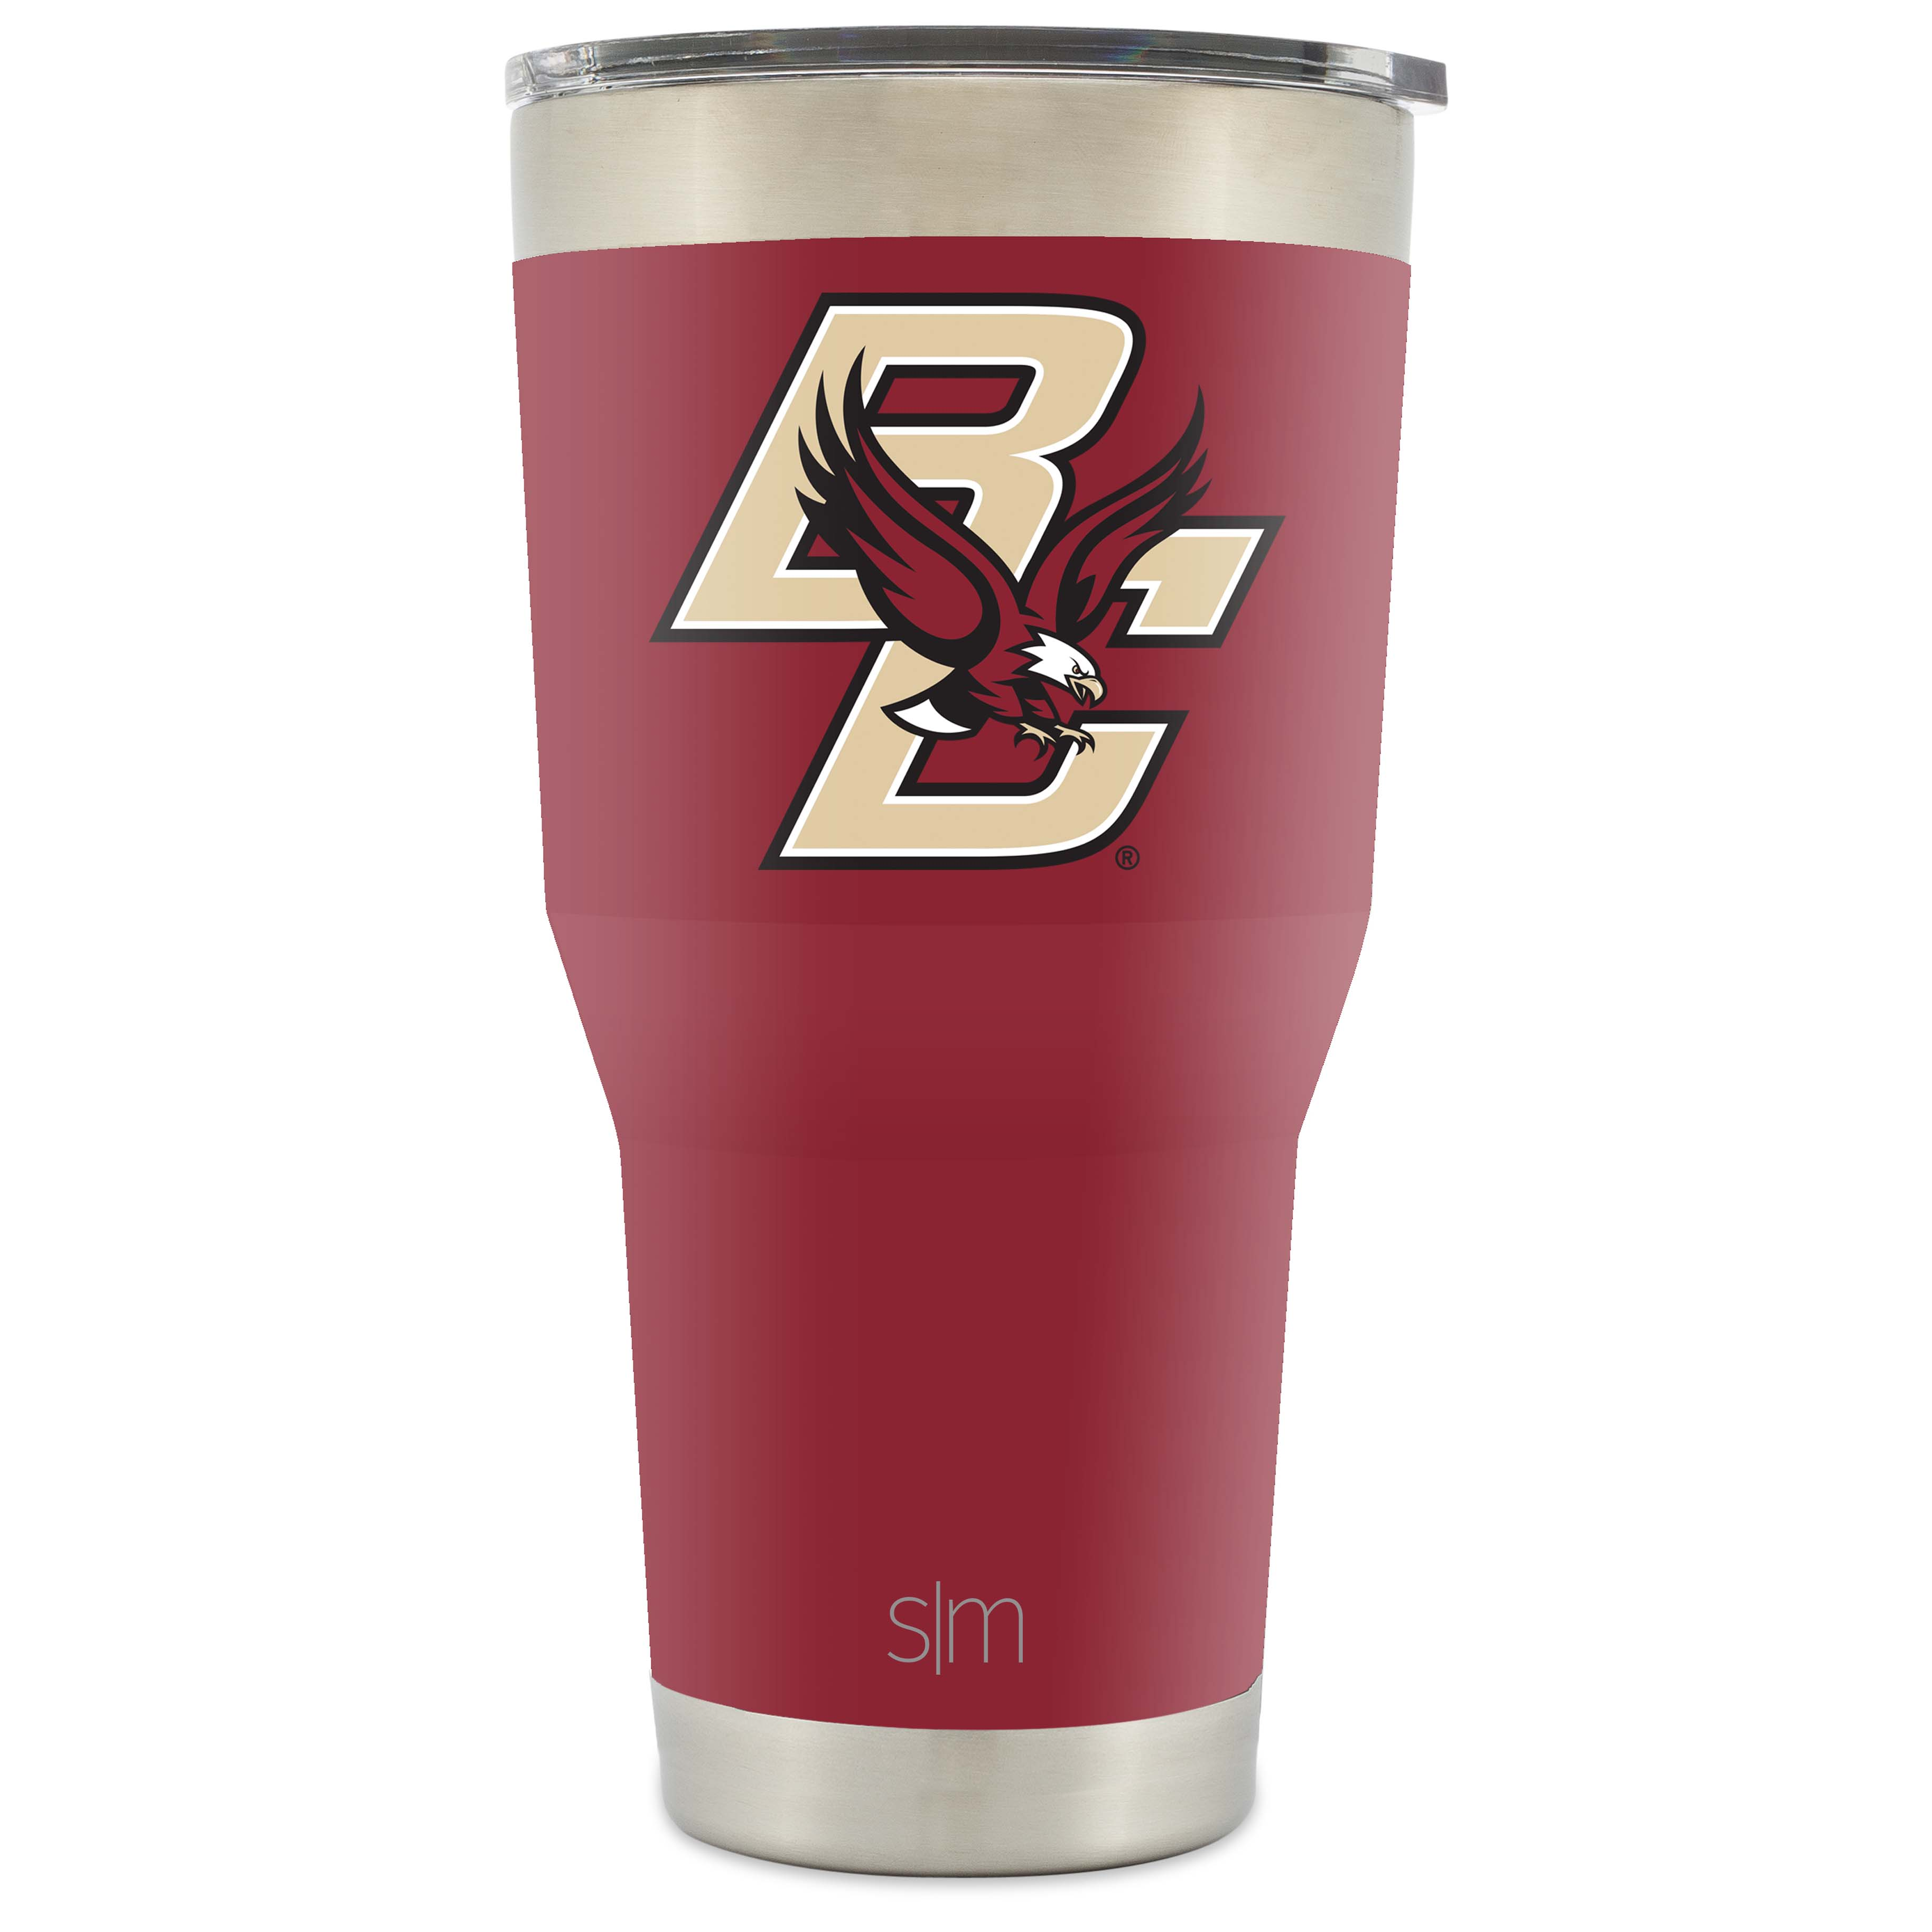 Simple Modern Boston College University 30oz Cruiser Tumbler - Vacuum Insulated Stainless Steel Travel Mug - BC Eagles Tailgating Hydro Cup College Flask